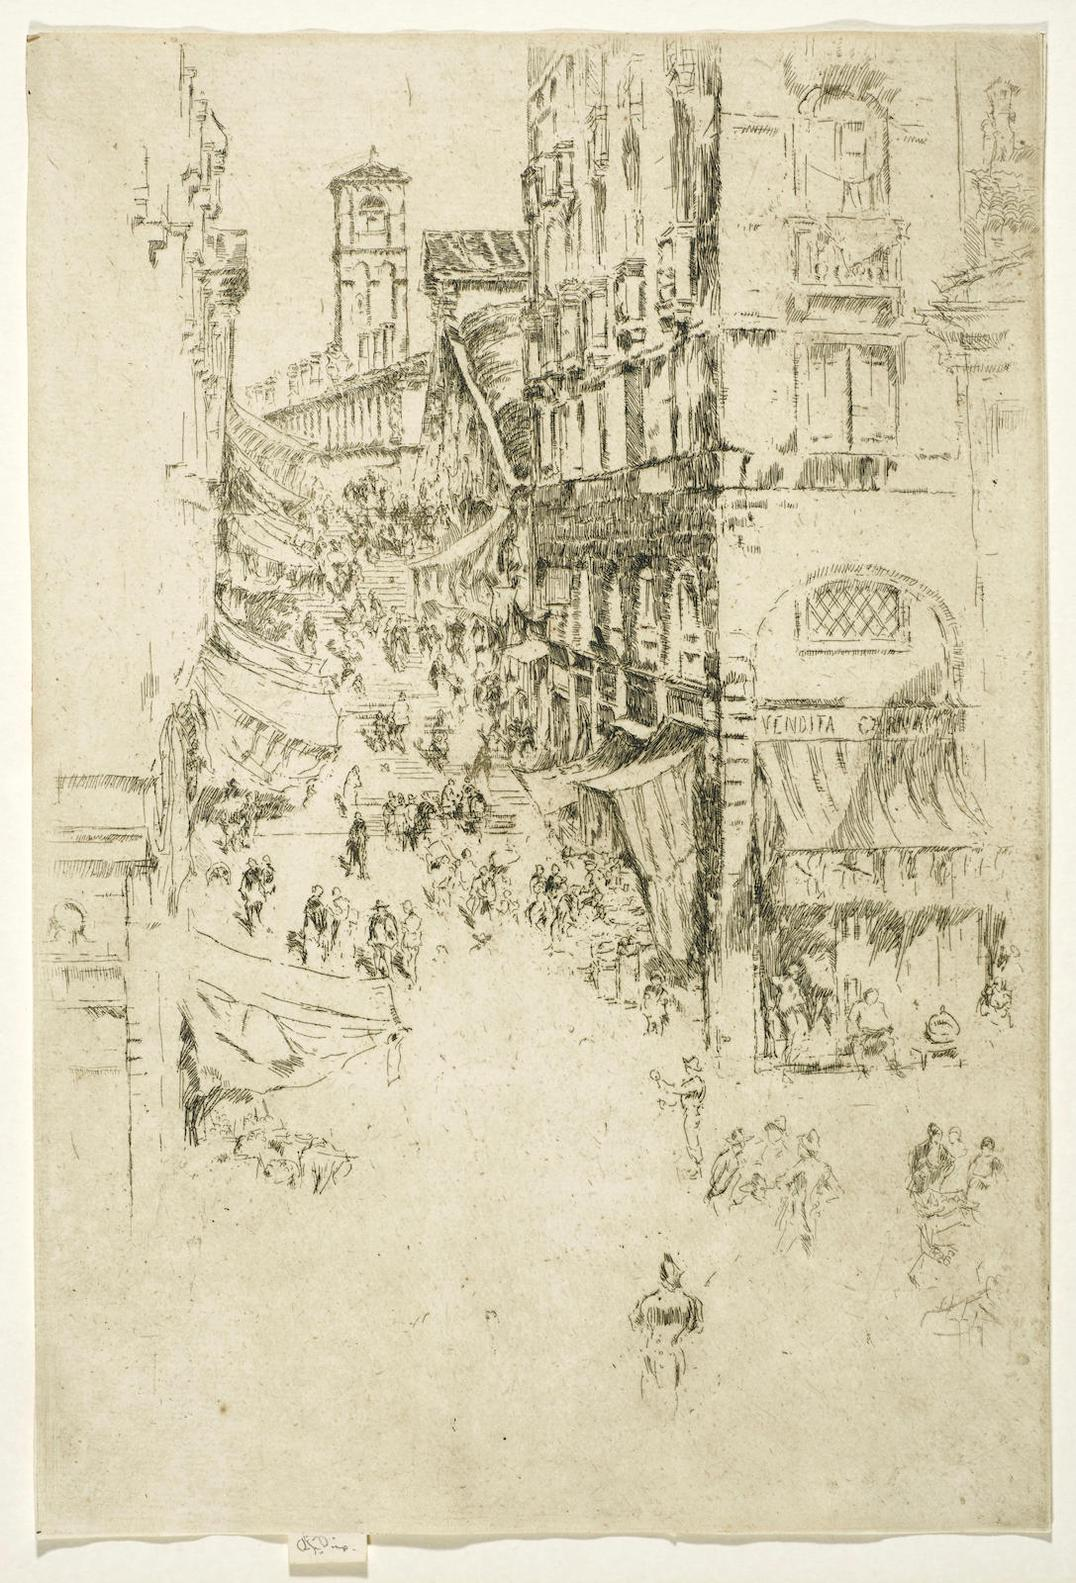 James Abbott McNeill Whistler-The Rialto, From Twenty-Six Etchings-1879